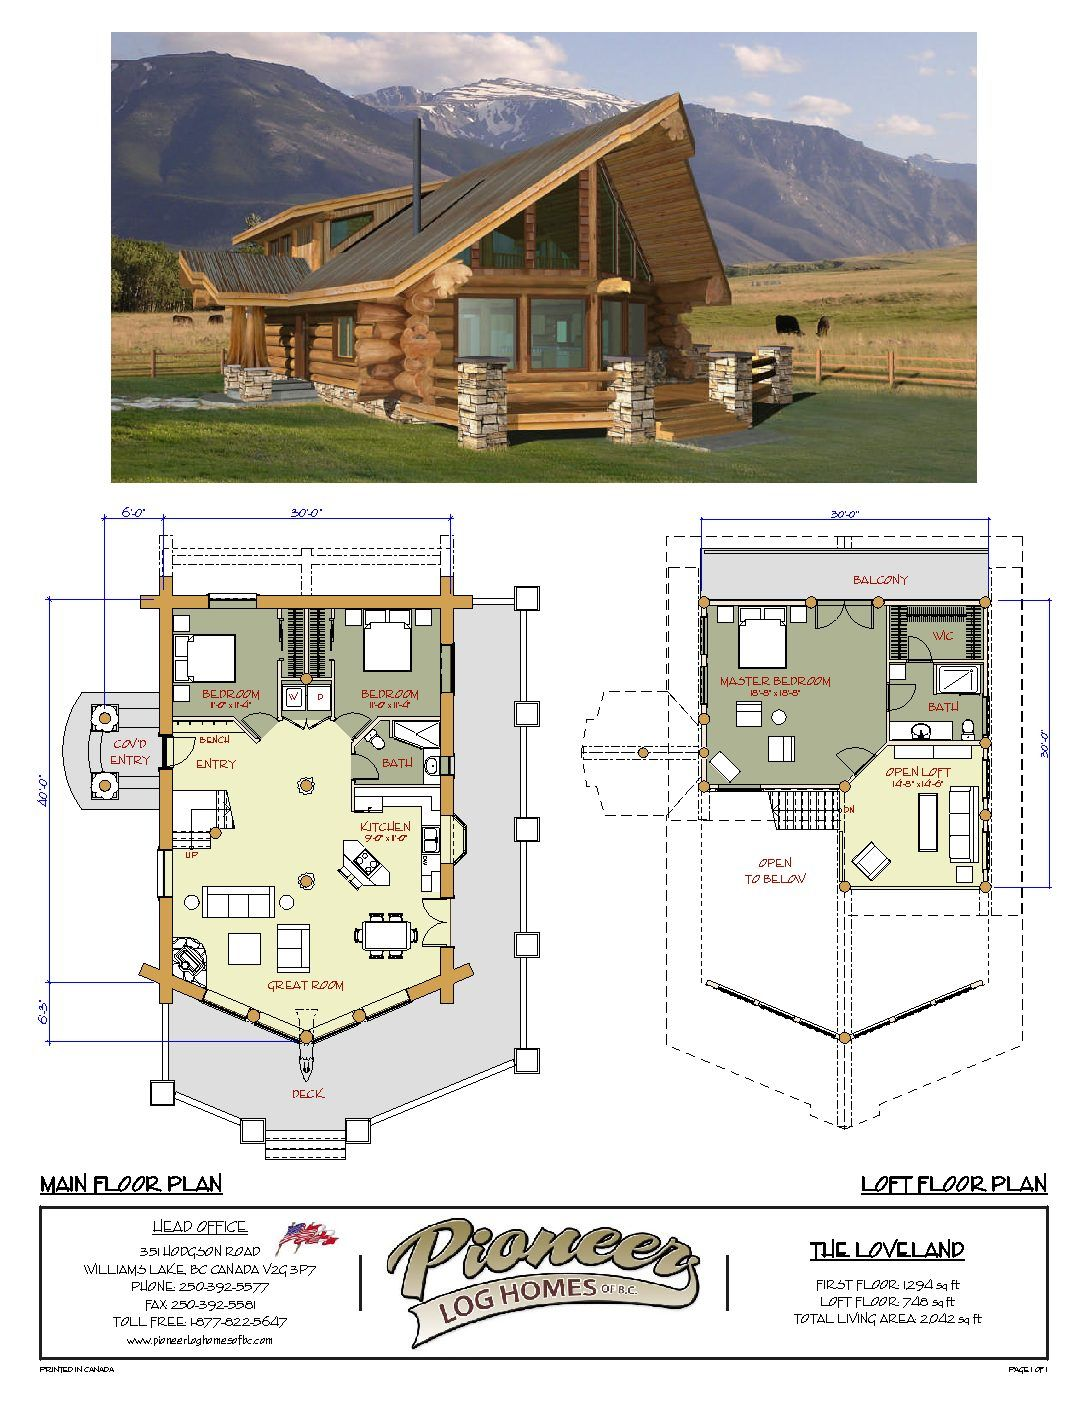 Loveland - Pioneer Log Homes Midwest | Lake cabin | Pinterest | Logs ...